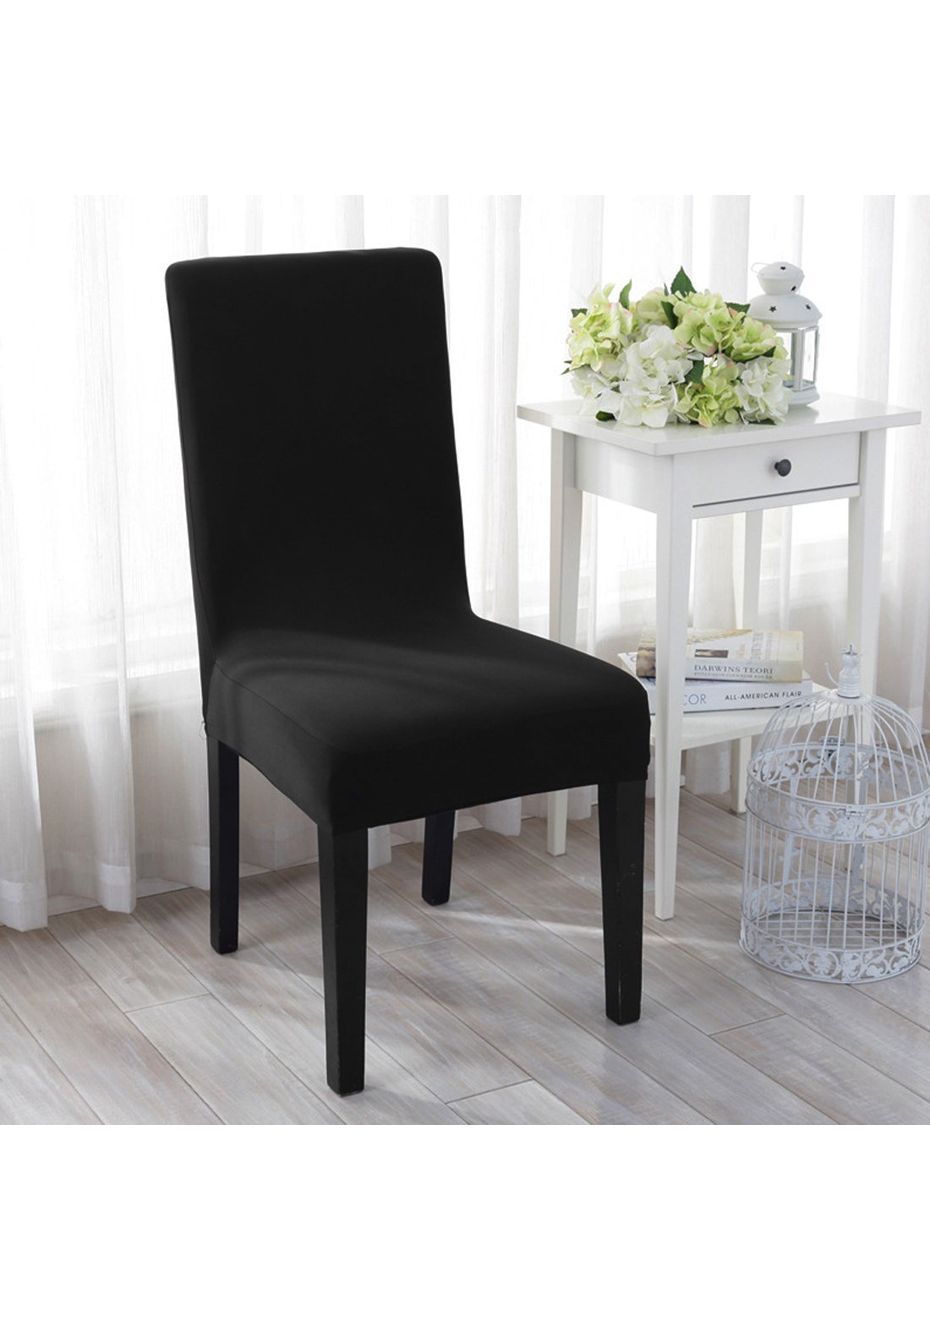 Dining Chair Slipcover Dining Chair Slipcovers Set Of 4 Black